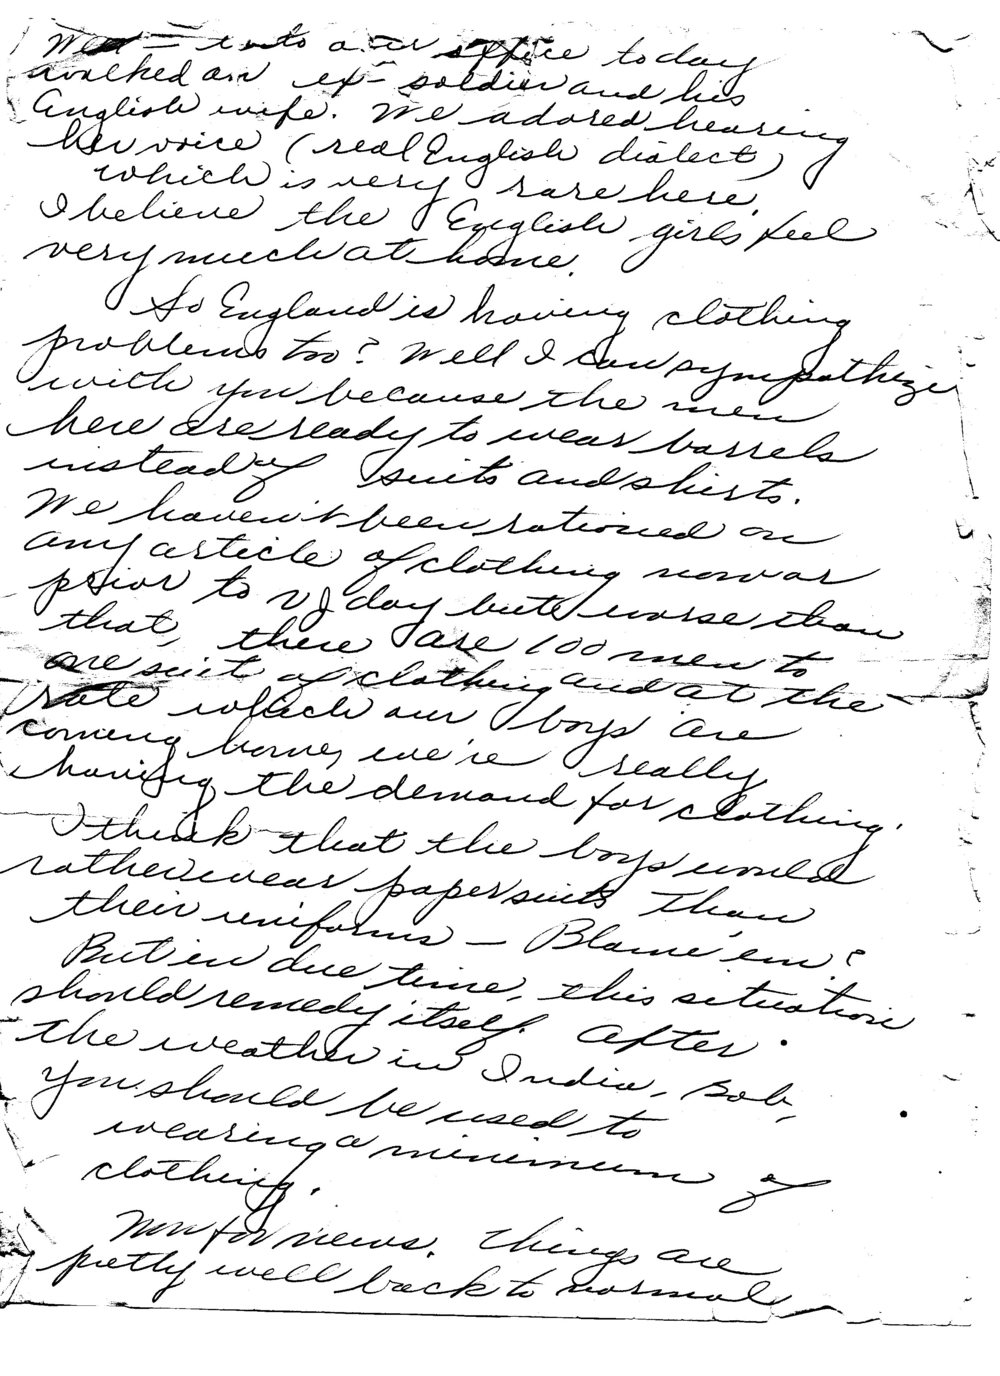 Ruth to Bob, Letter 6, February 1946, page 2 of 5